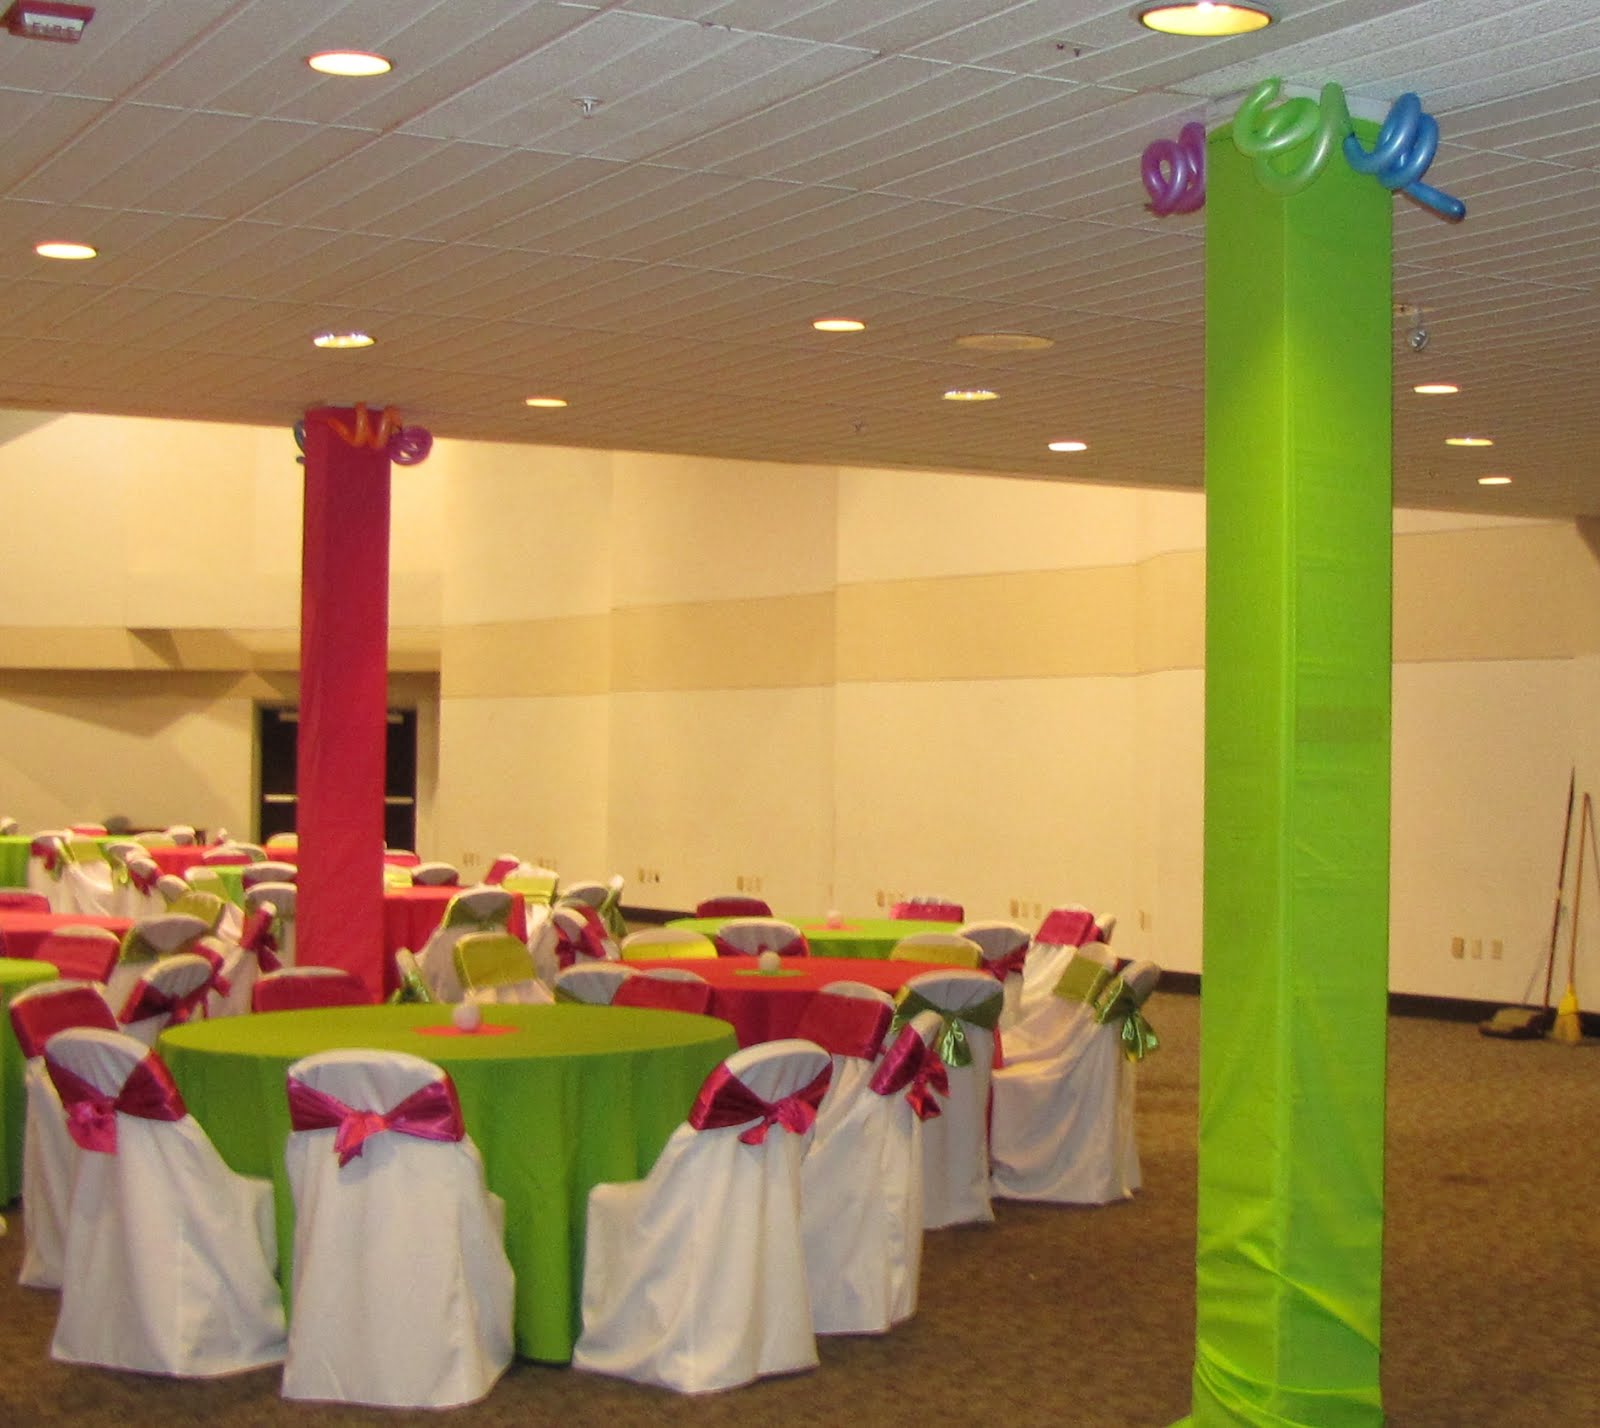 per prom committees request we covered the pillars with lime and pink